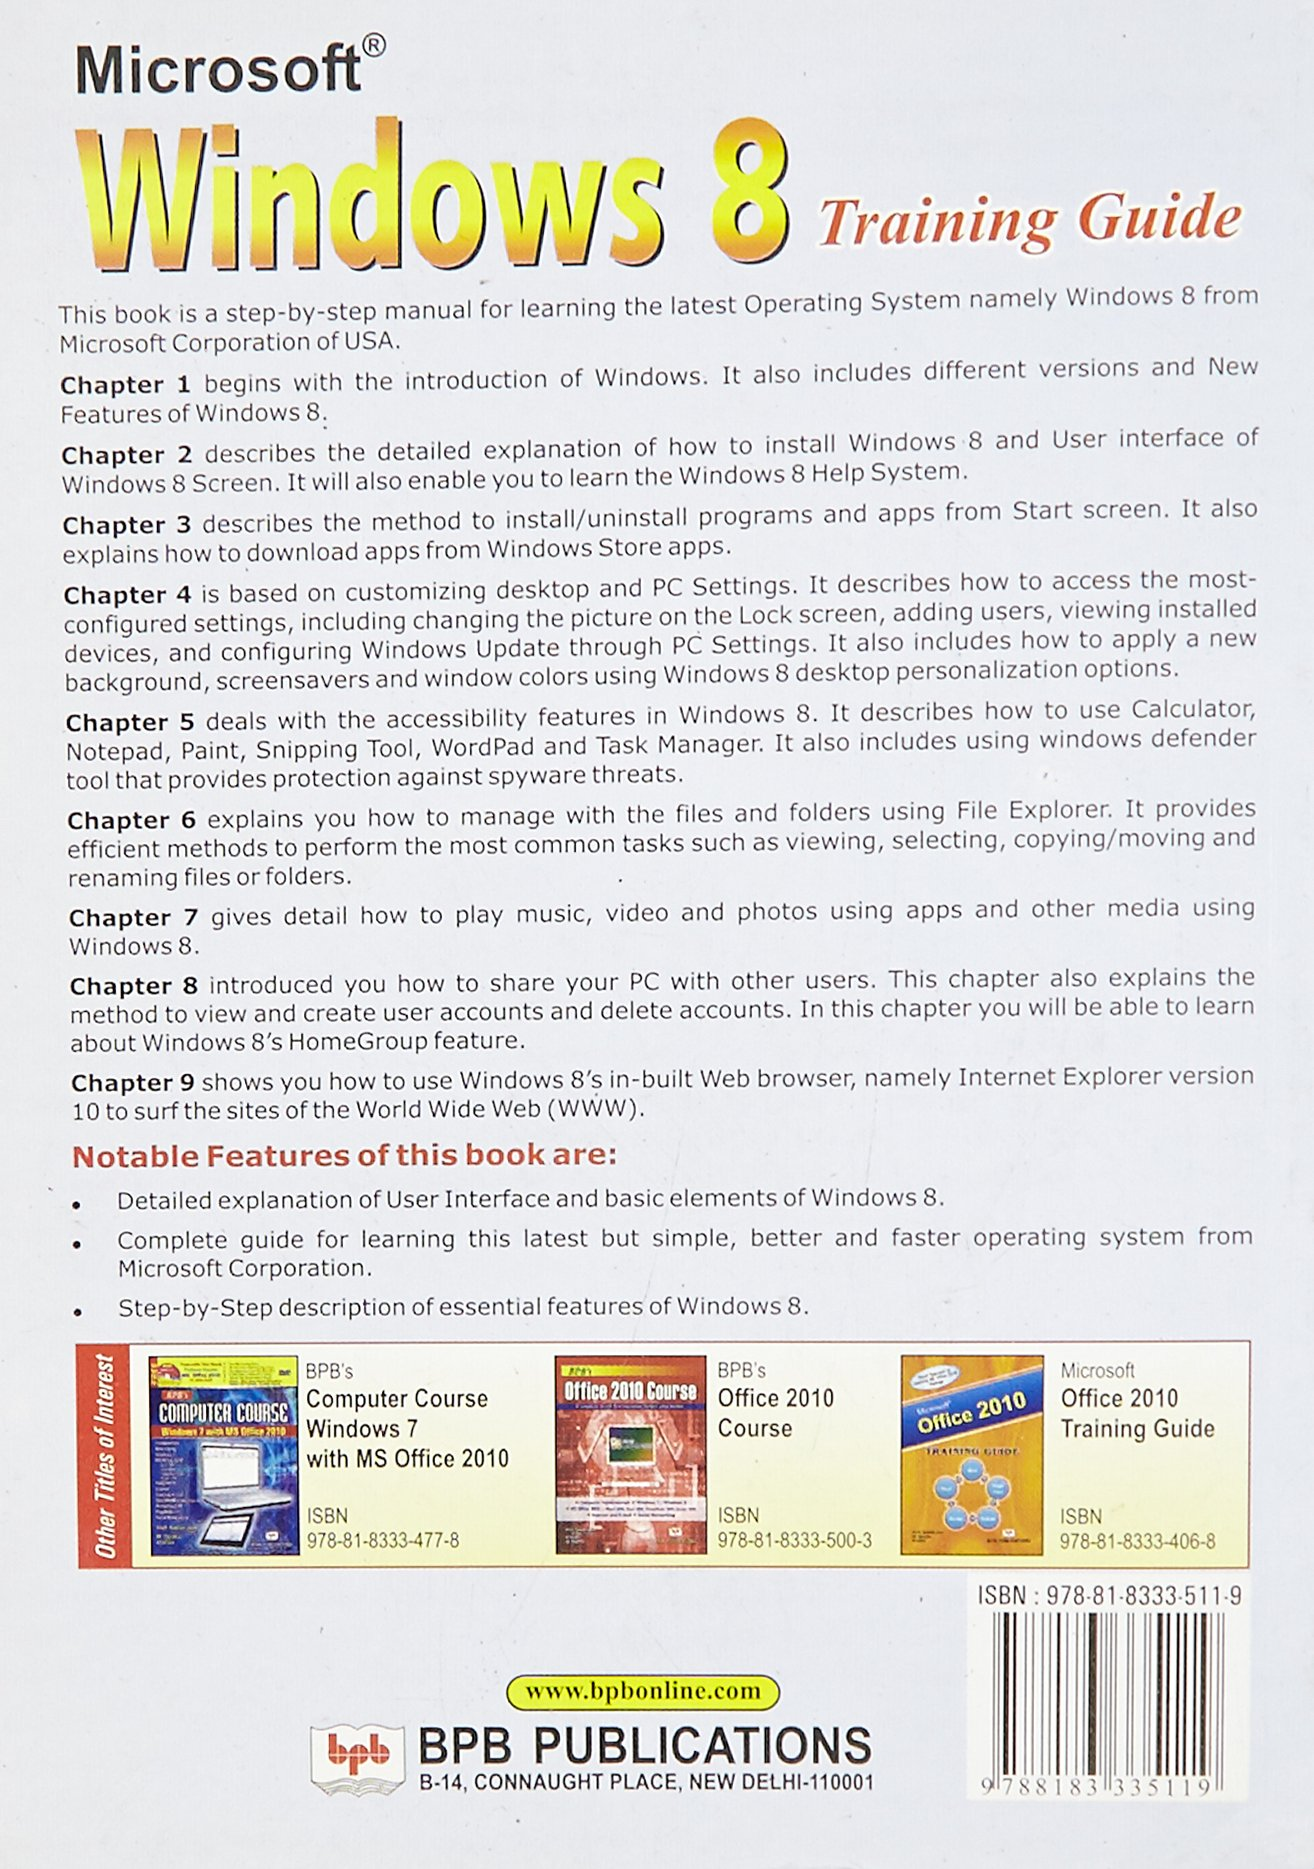 MS Windows 8 Training Guide: Satish Jain: 9788183335119: Amazon.com: Books